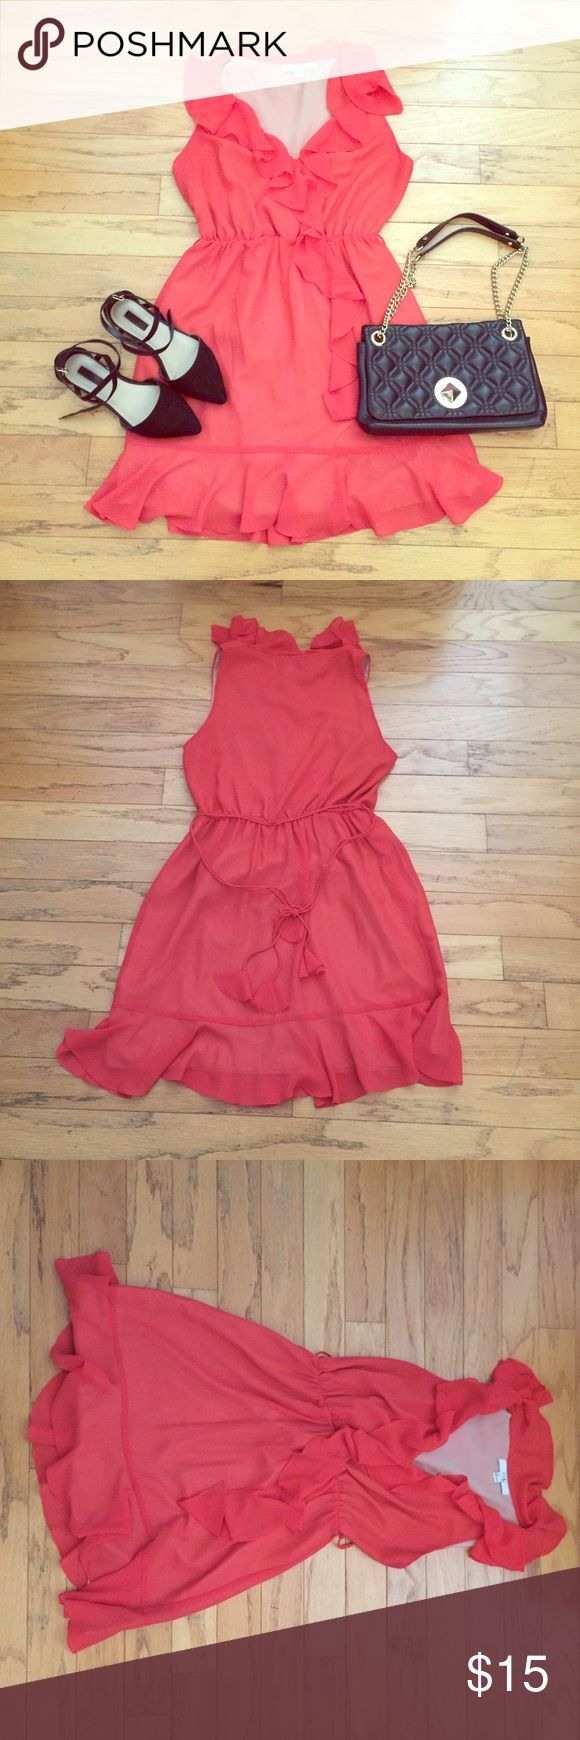 ✨F21 Tangerine Dress✨ 🌼Super fun and gorgeous tangerine dress that can be worn day or night time ! Light weight and has accent ruffles ! 🌼 Forever 21 Dresses